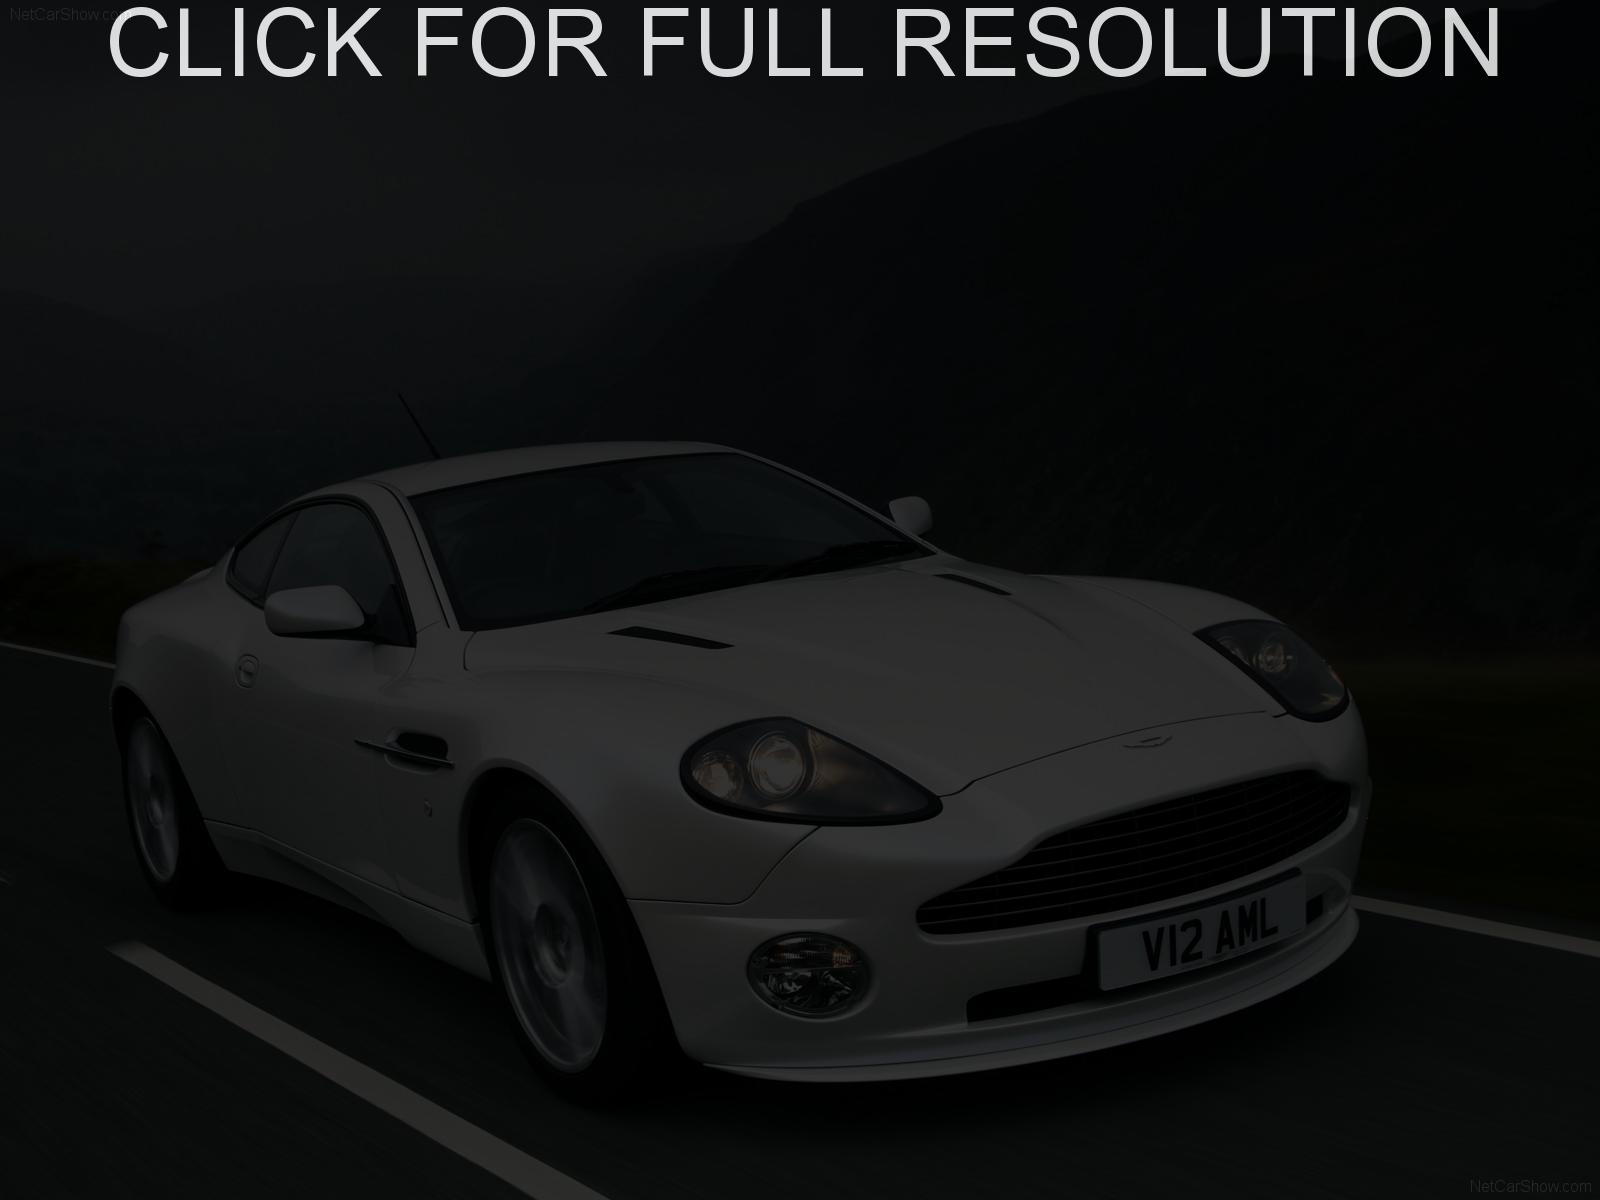 vanquish – Automobile Wallpapers in| HD | Iphone | Android| Desktop 4 Wallpaper